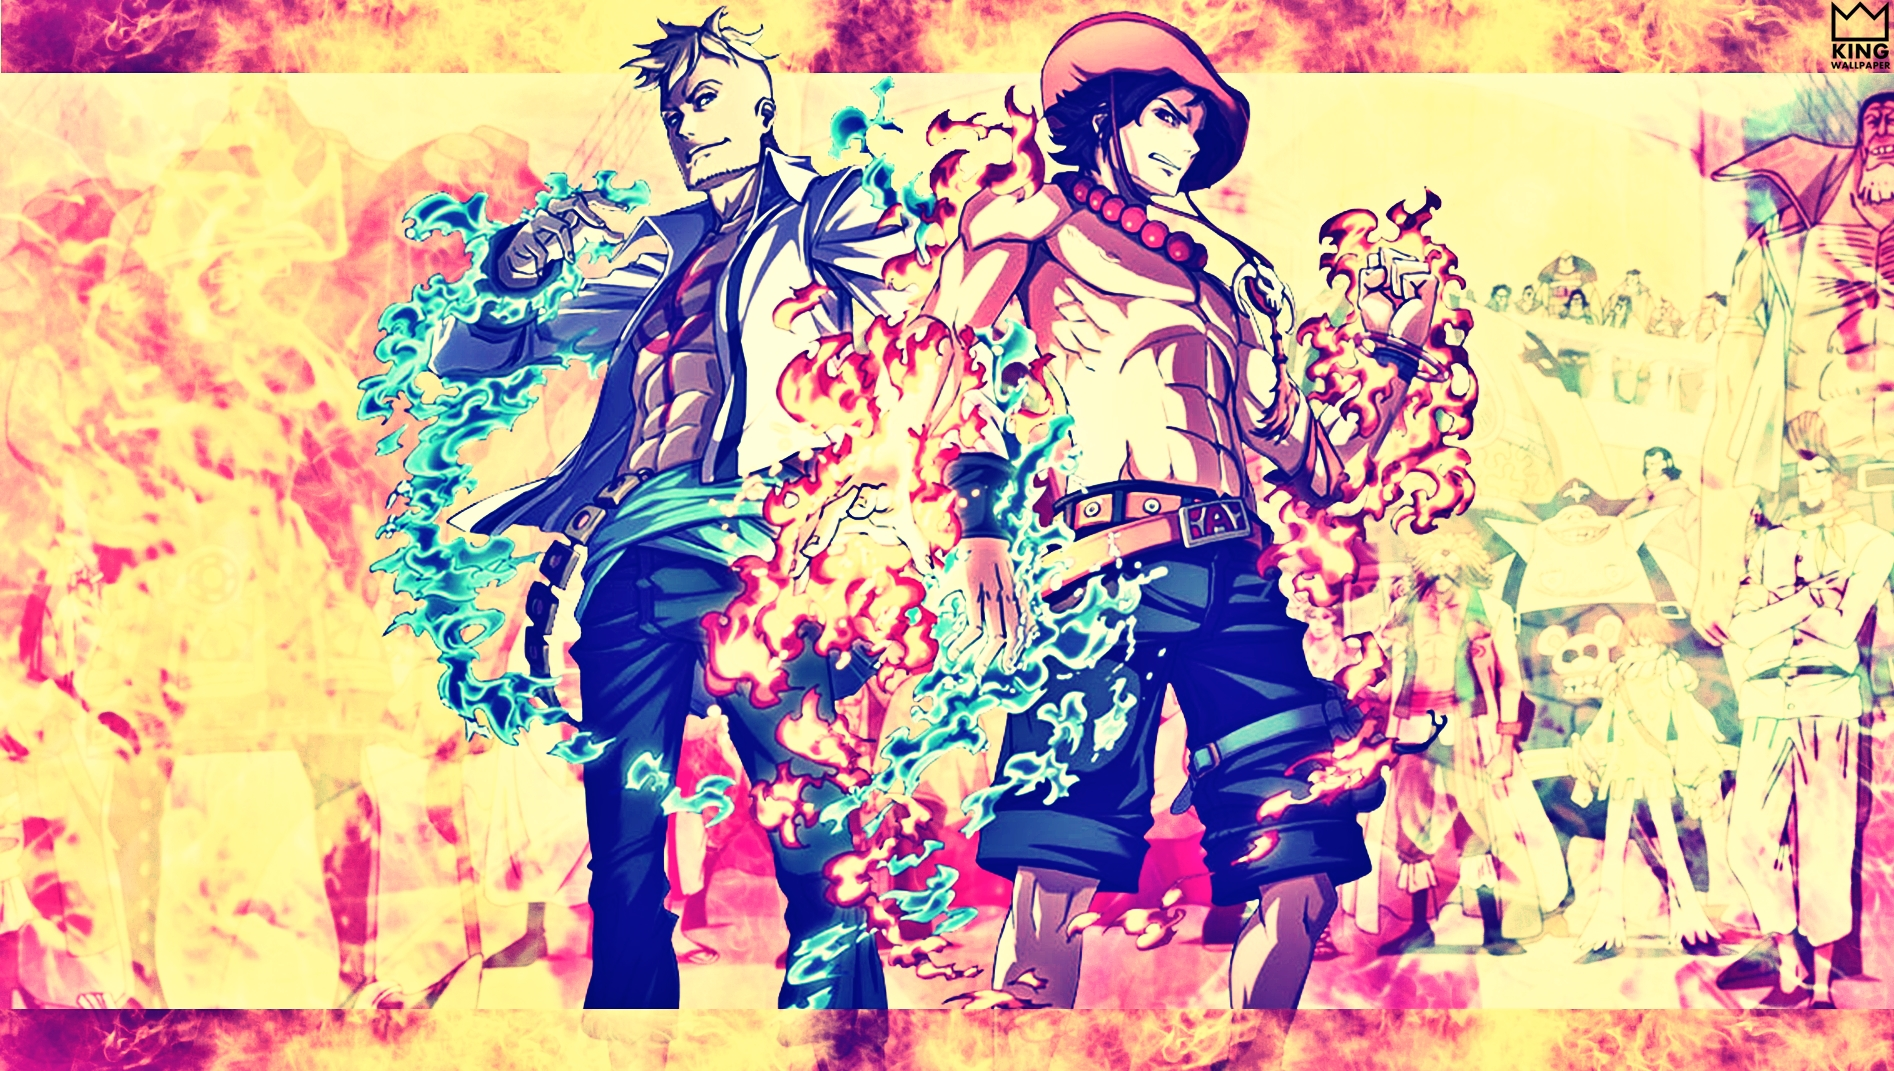 Marco Ace Wallpaper At One Piece By Kingwallpaper On